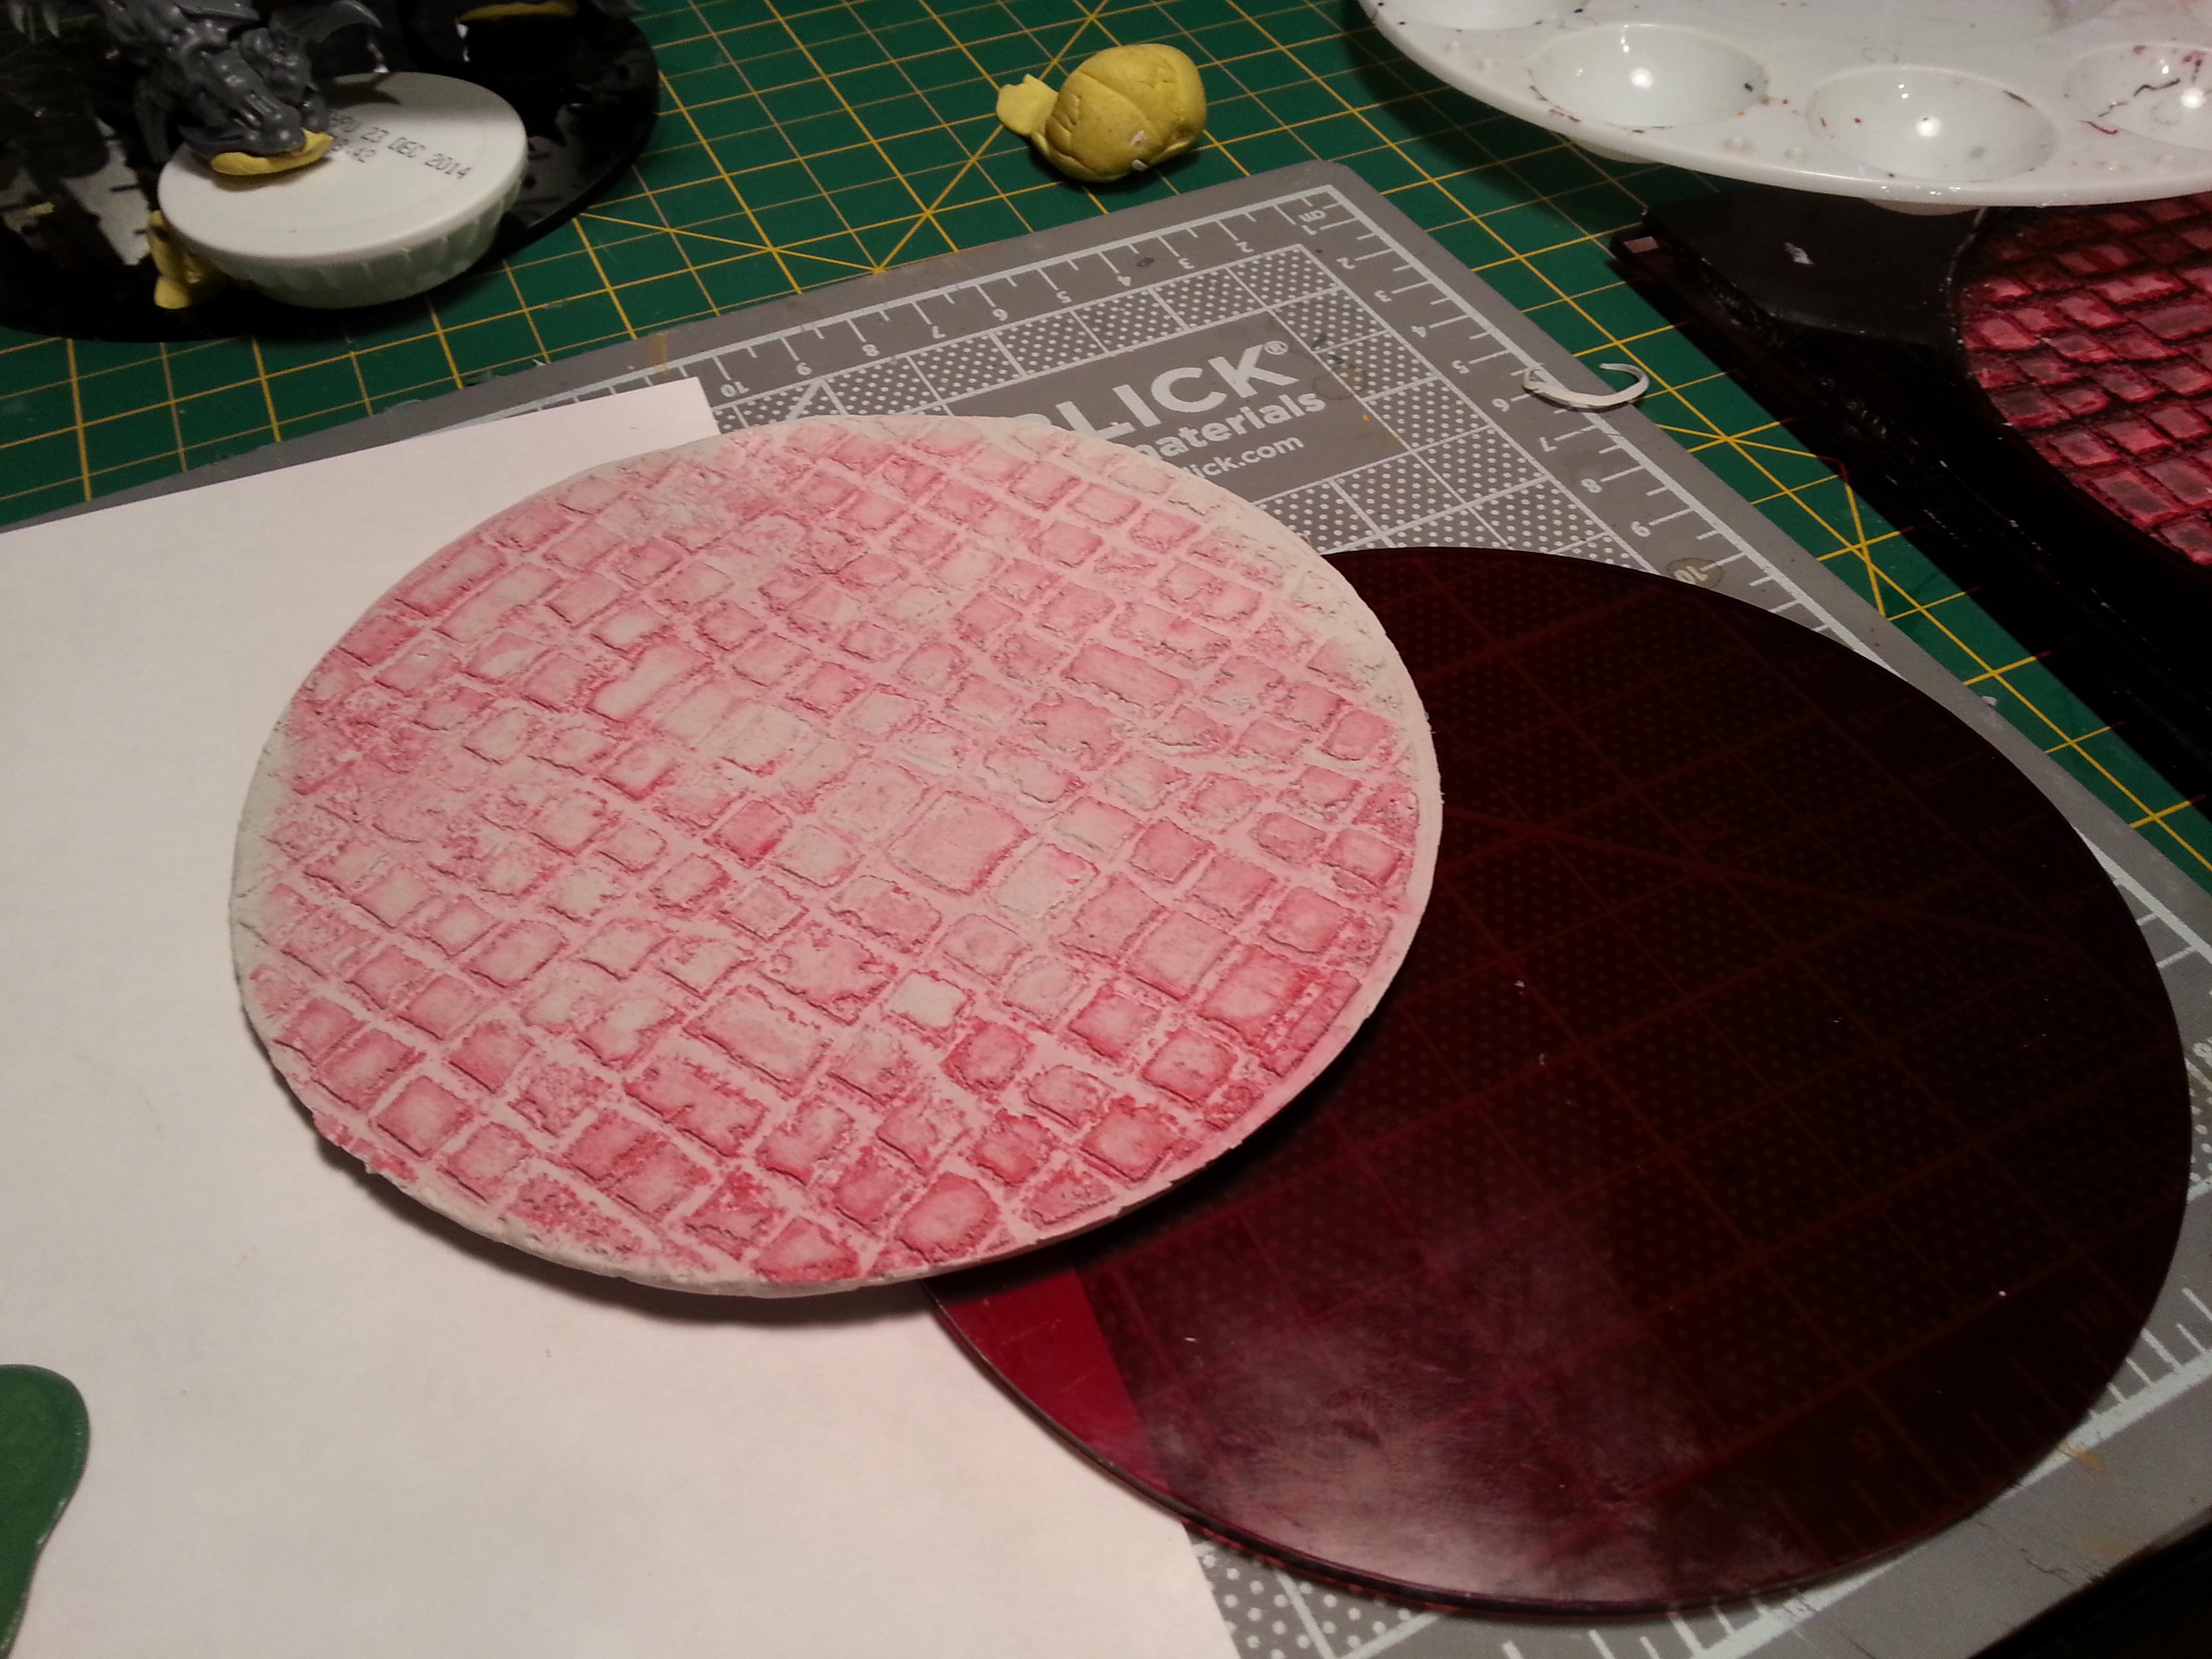 Barbie Step Eleven - Dried enough to handle, and the disk to which it will be glued. The red tint is due to traces of plastic dust left over from the laser engraving process, which I didn